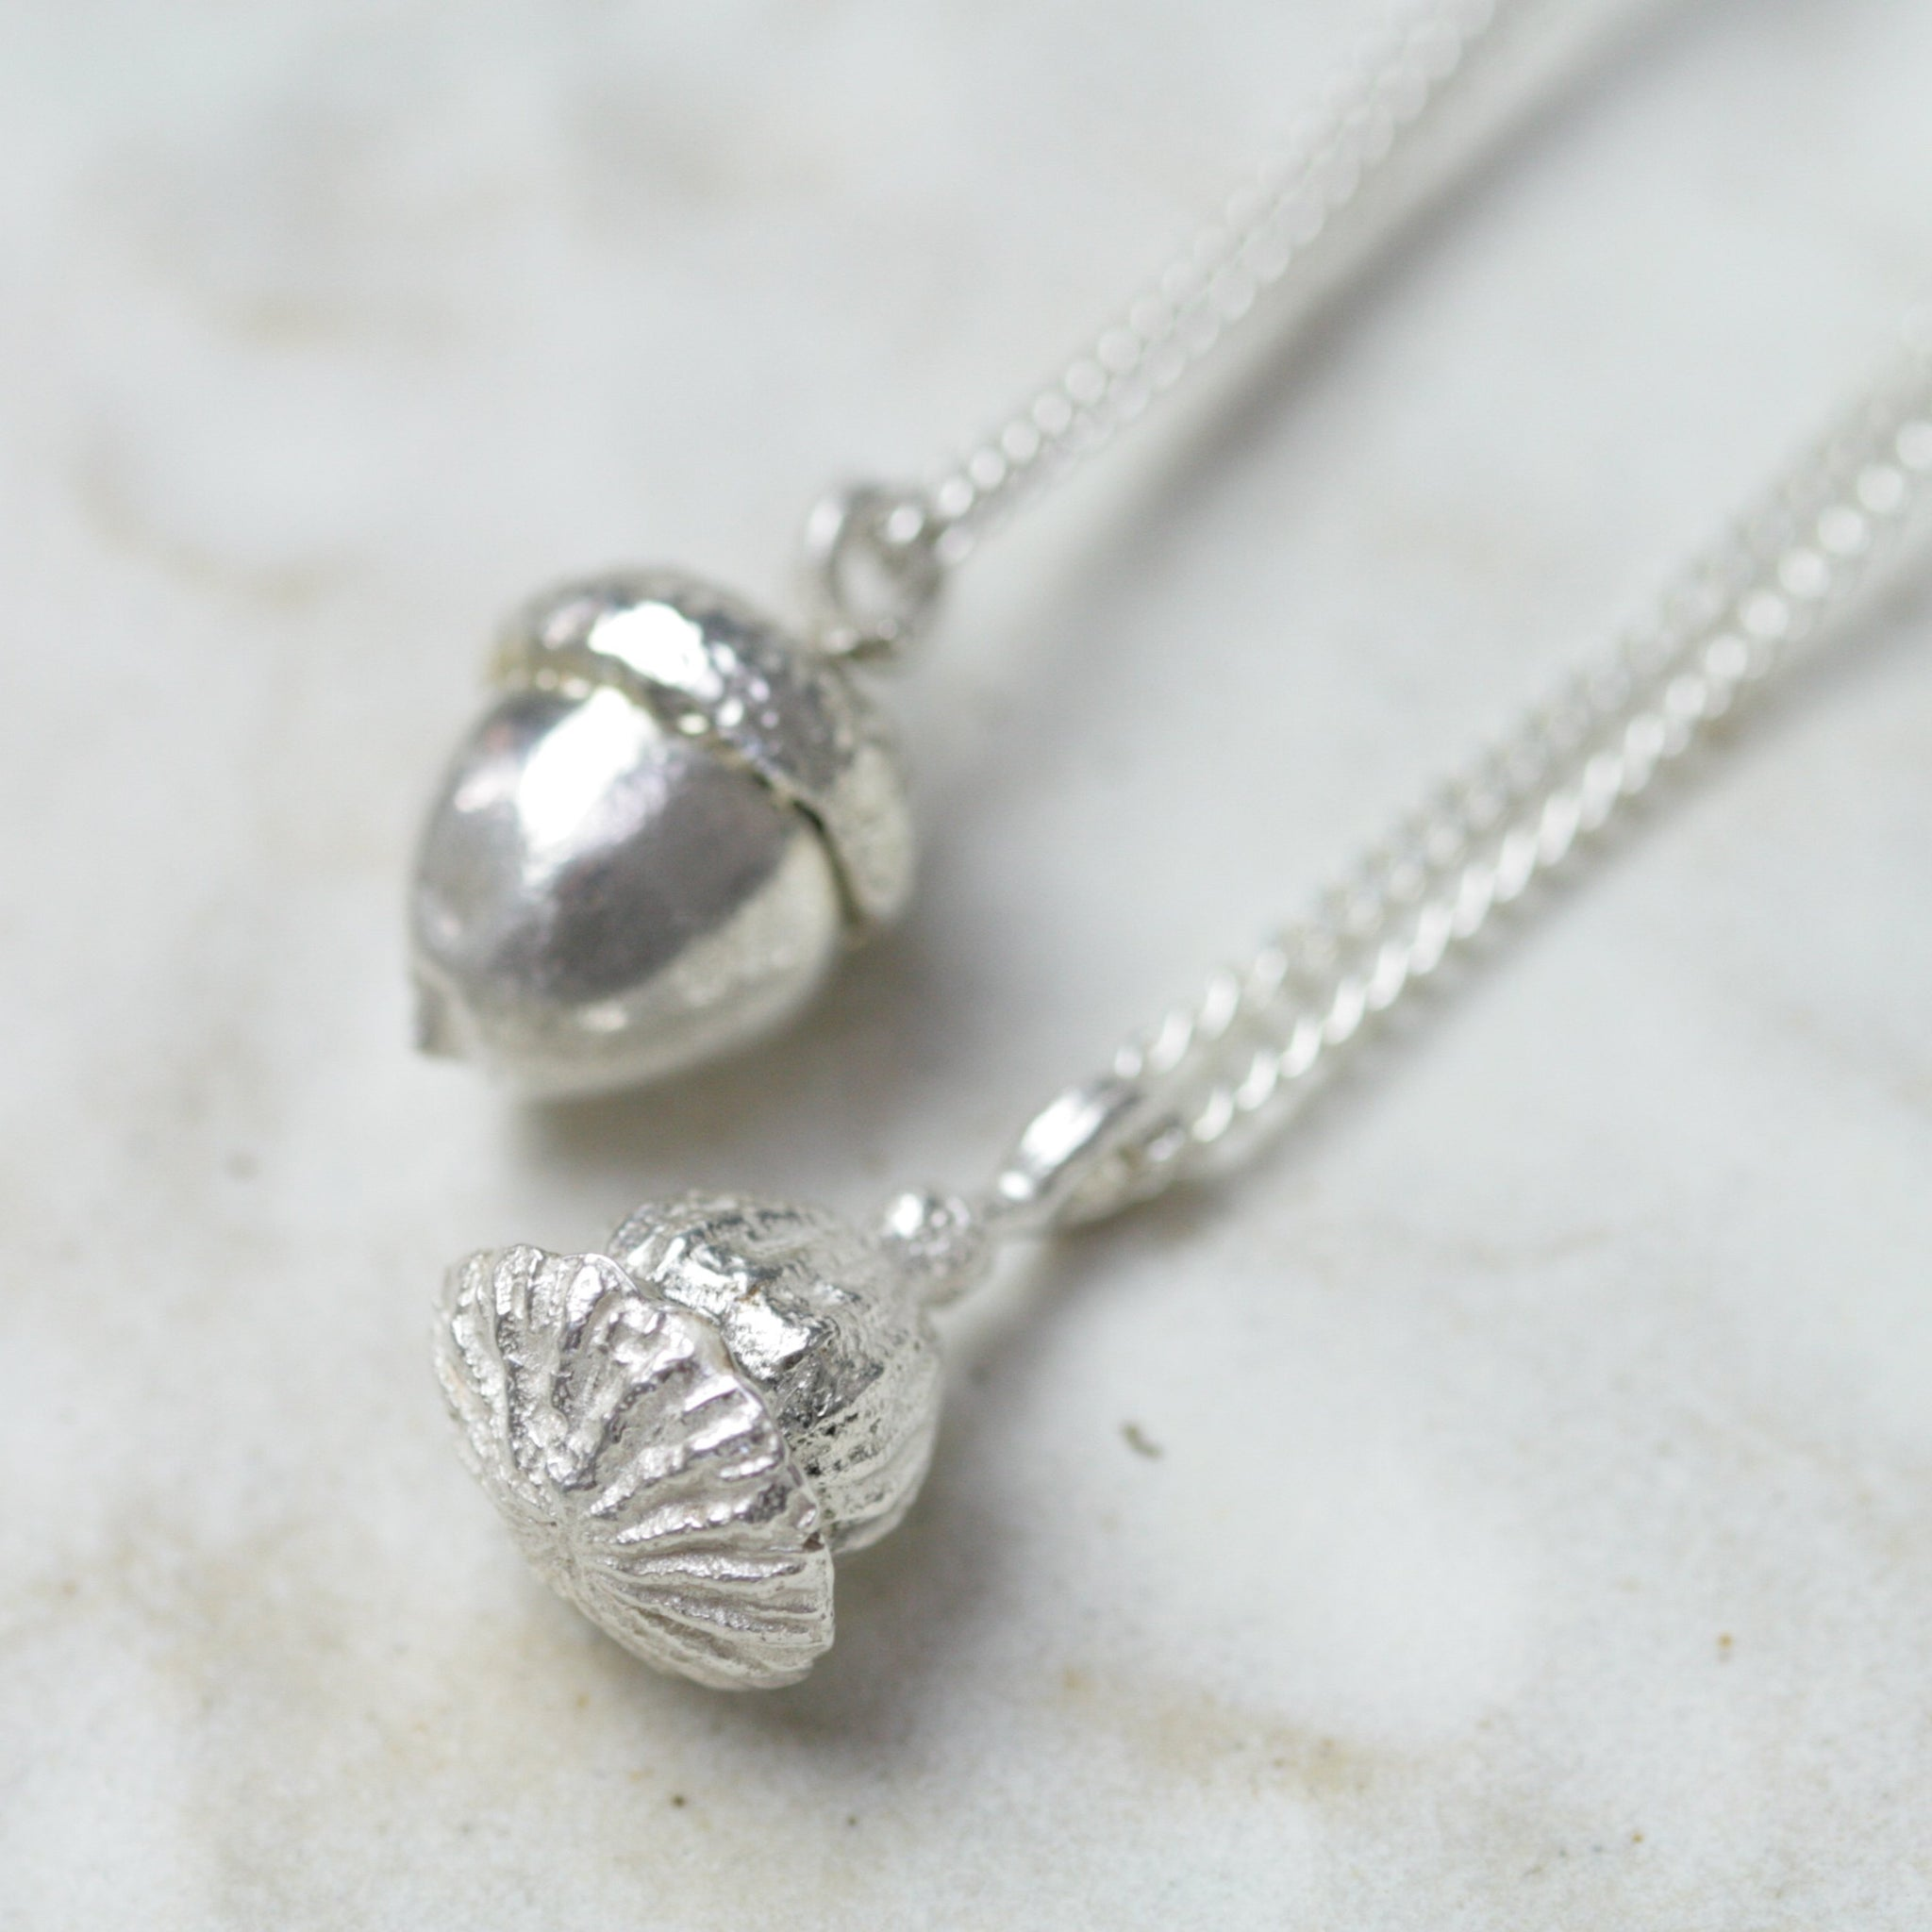 Encapsulated Poppy seed memory pendant